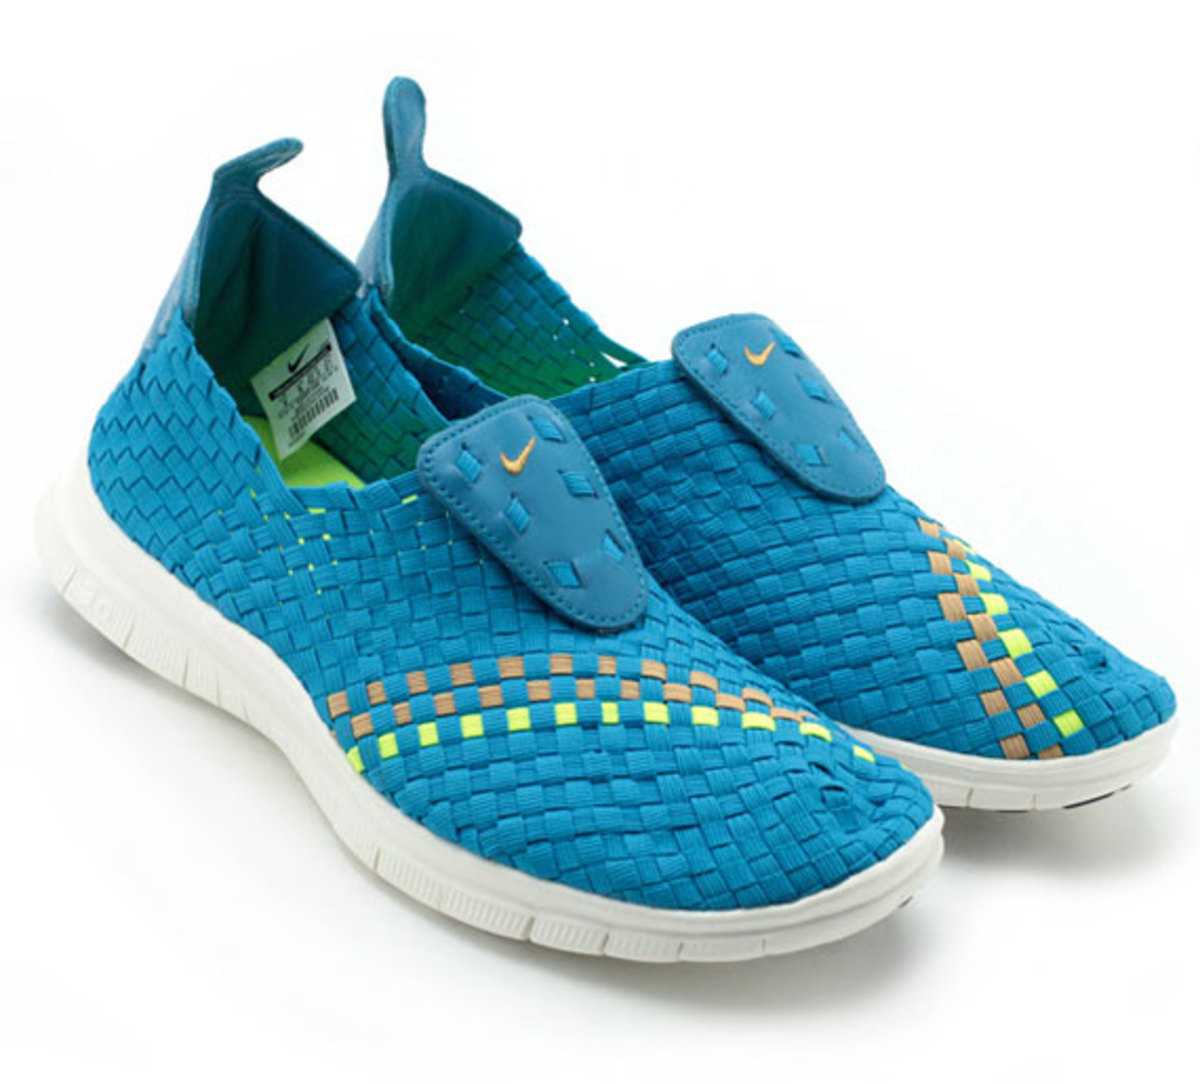 nike-free-woven-spring-2013-colorway-preview-02